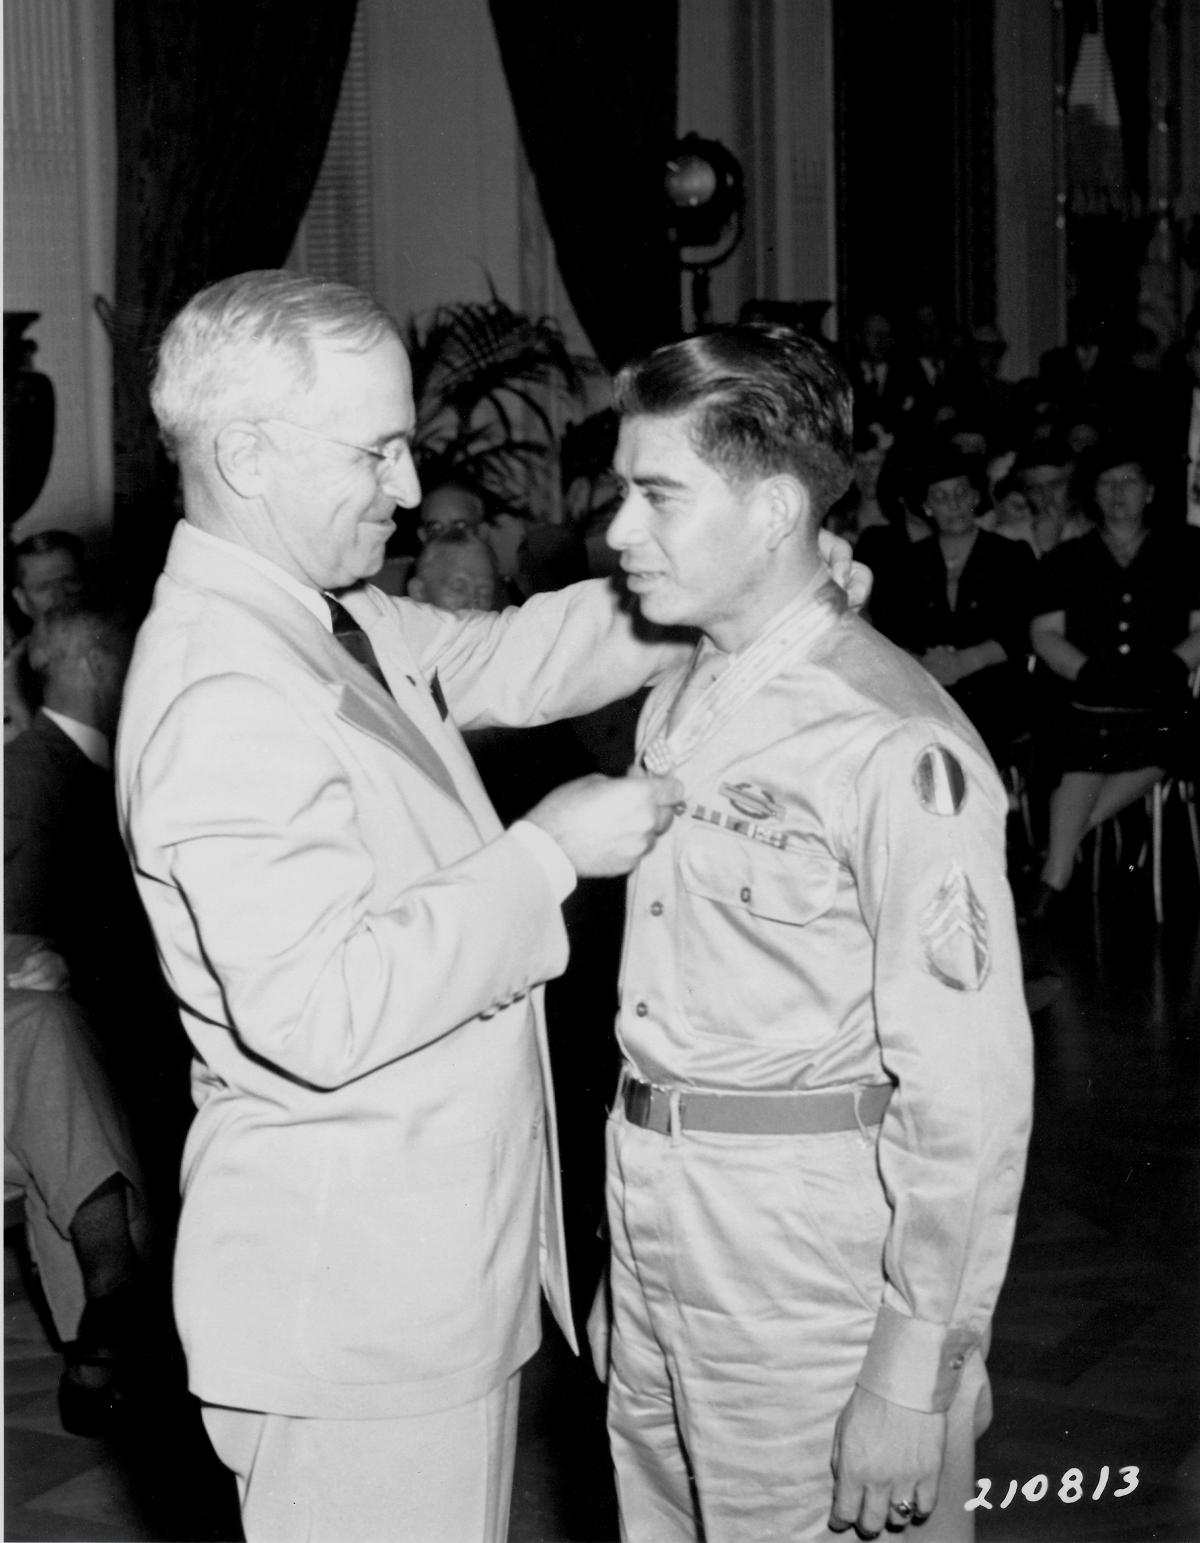 President Truman places the medal around Garcia's neck